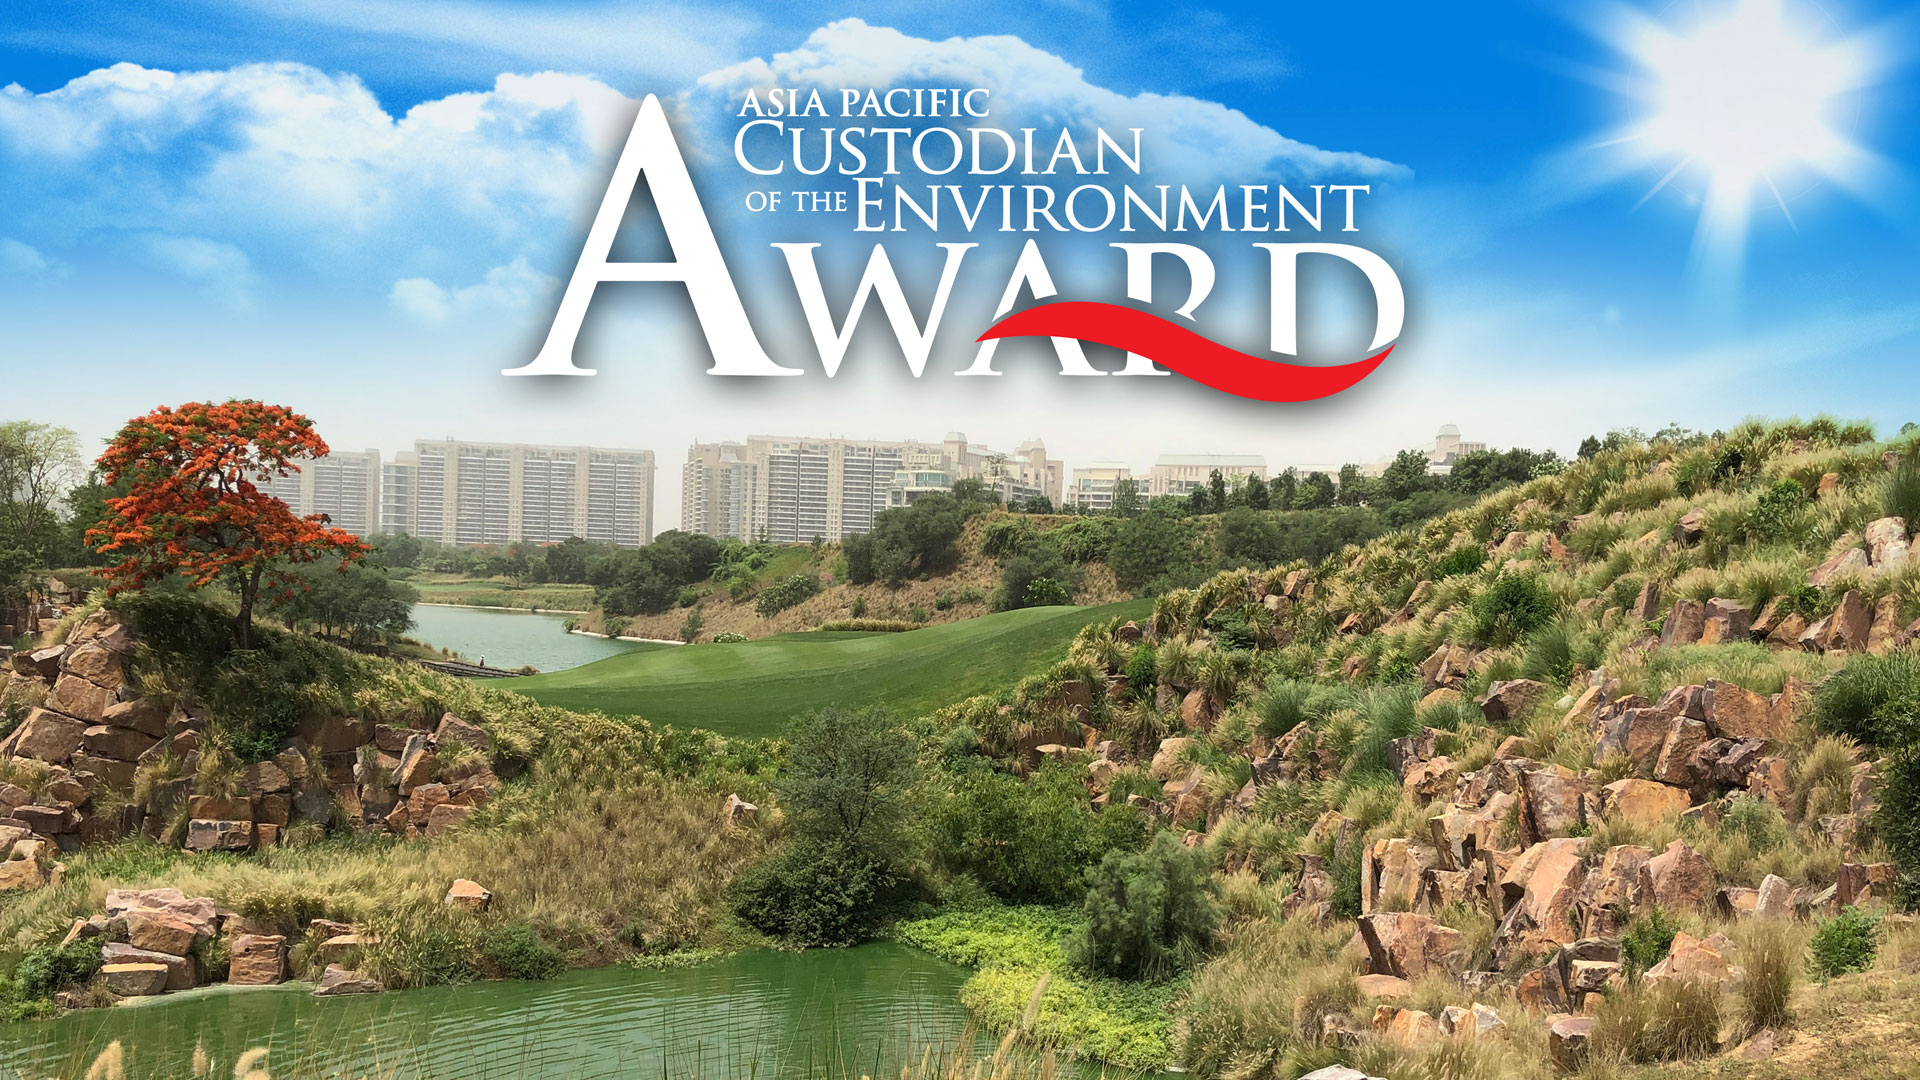 DLF GOLF & COUNTRY CLUB IS THE WINNER OF ASIA PACIFIC CUSTODIAN OF THE ENVIRONMENT AWARD